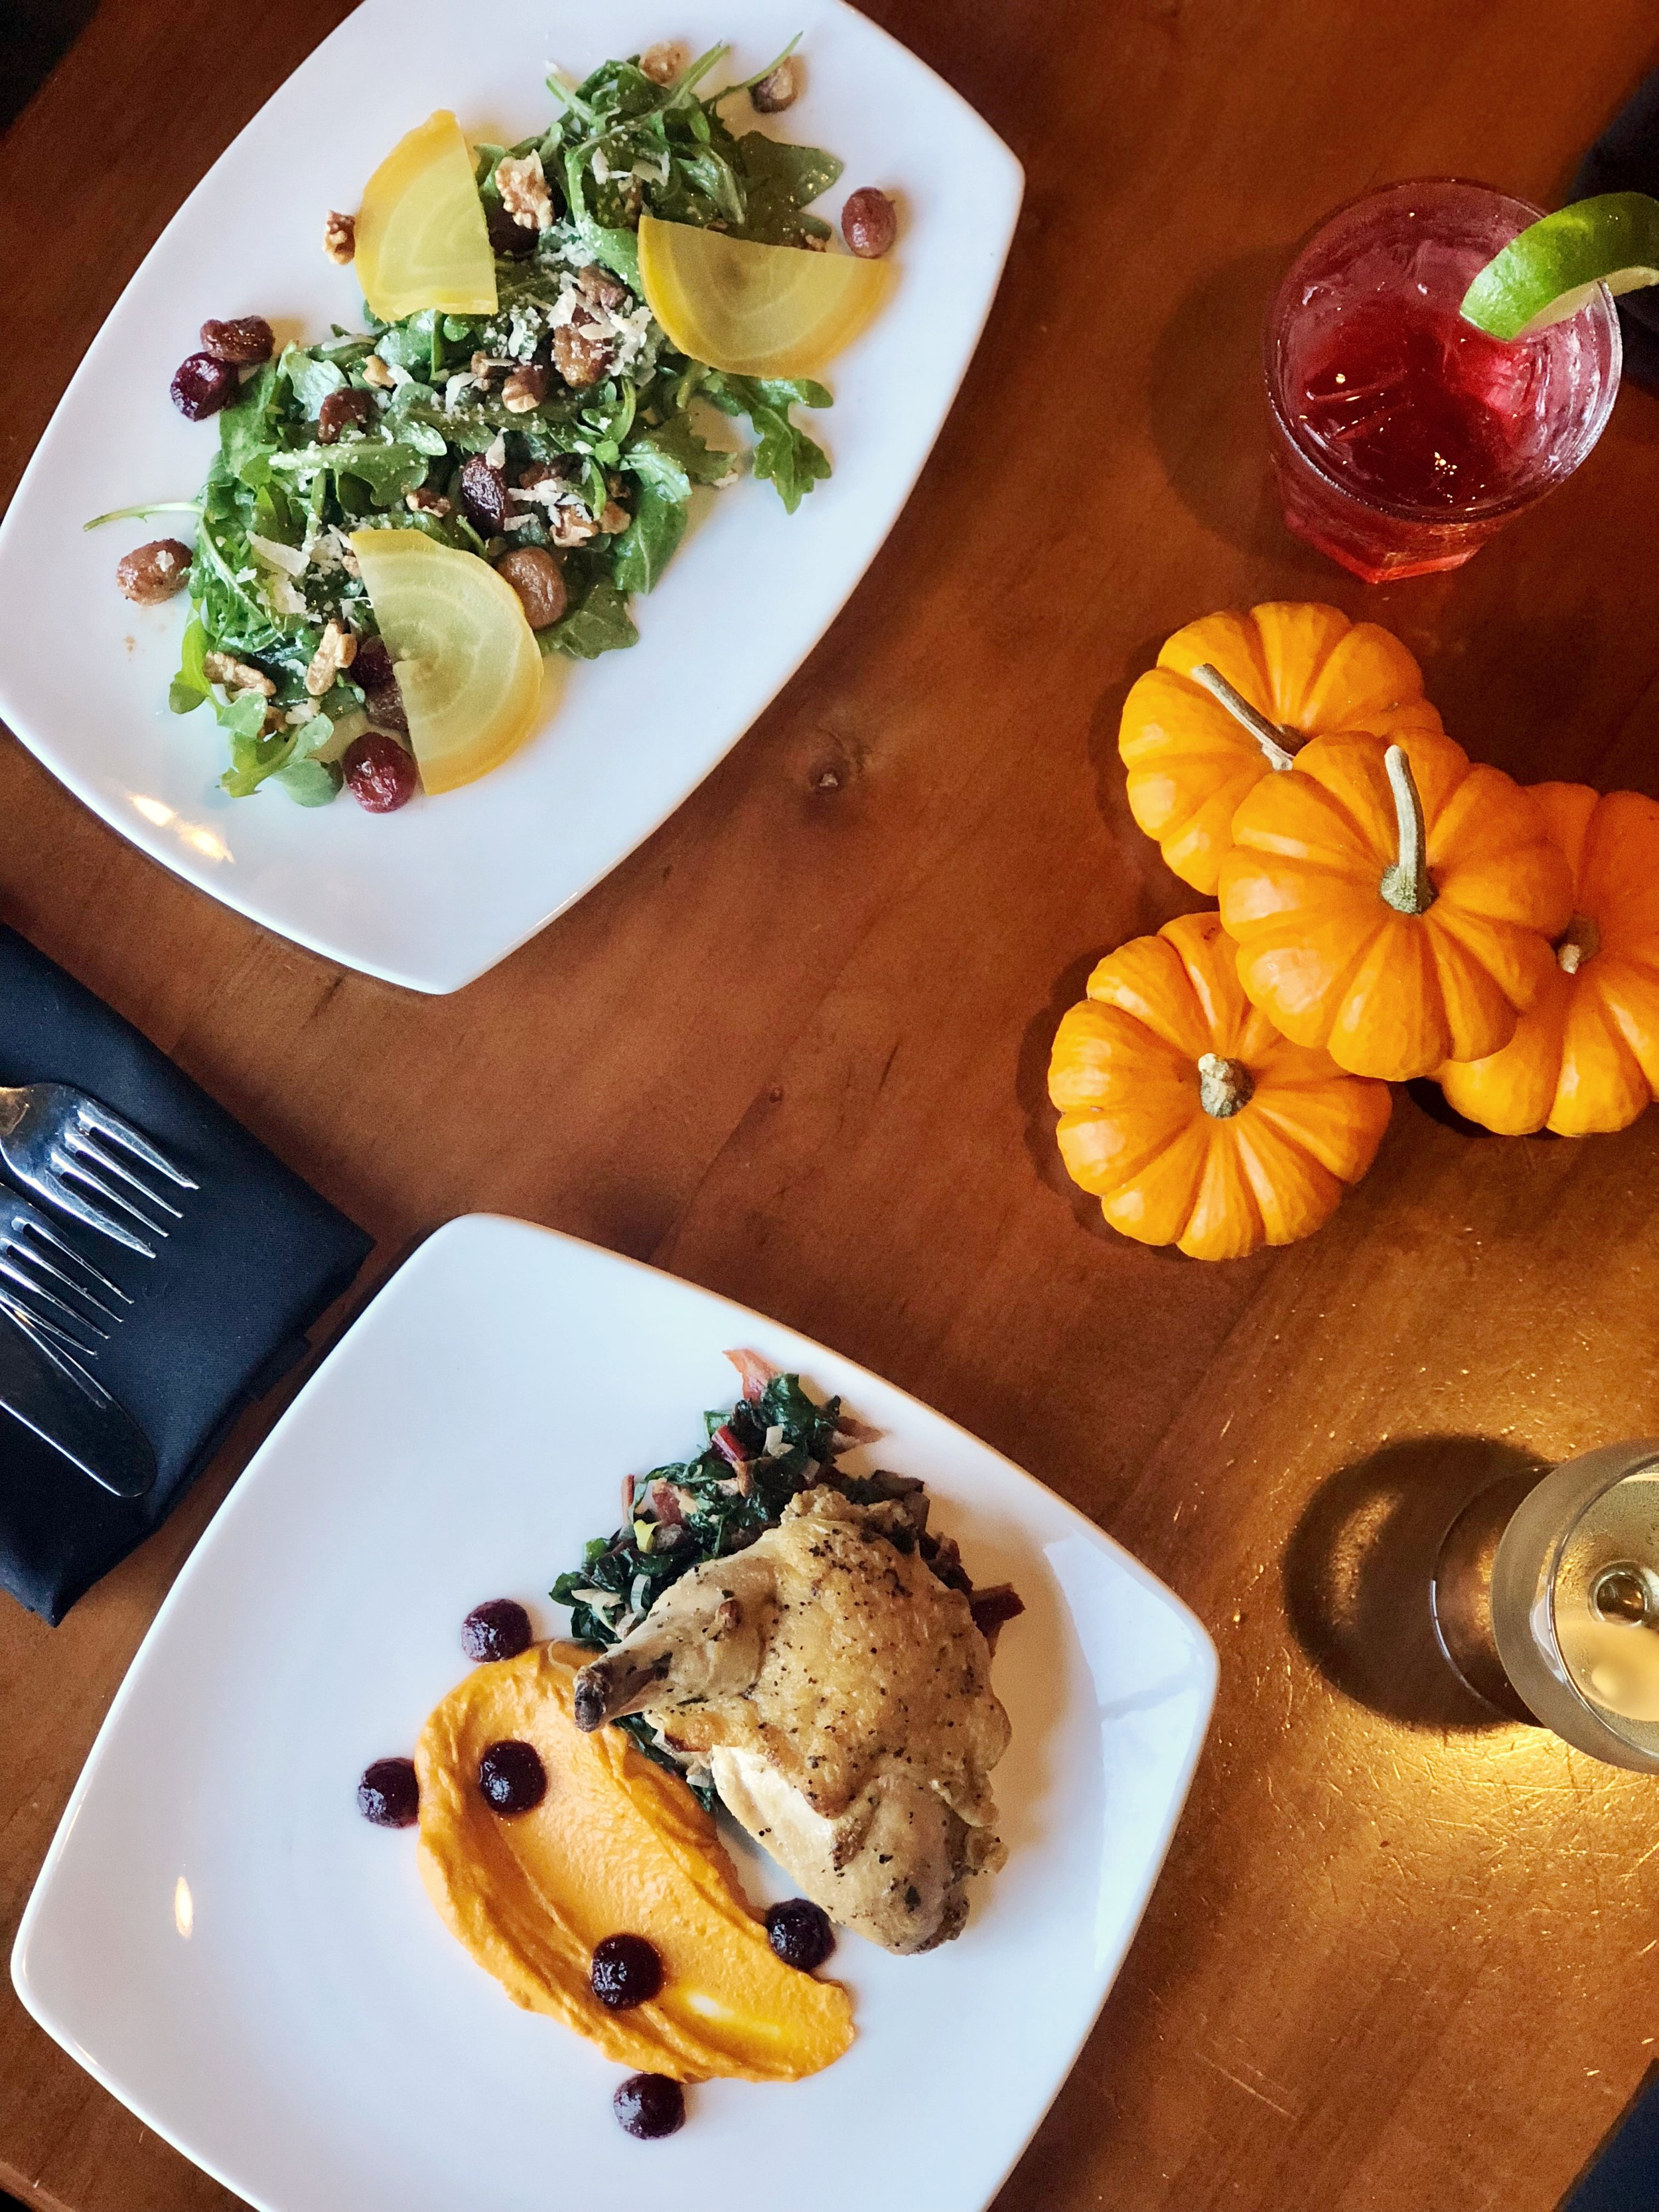 Swamp Fox Farmers Market Menu is available every night through October